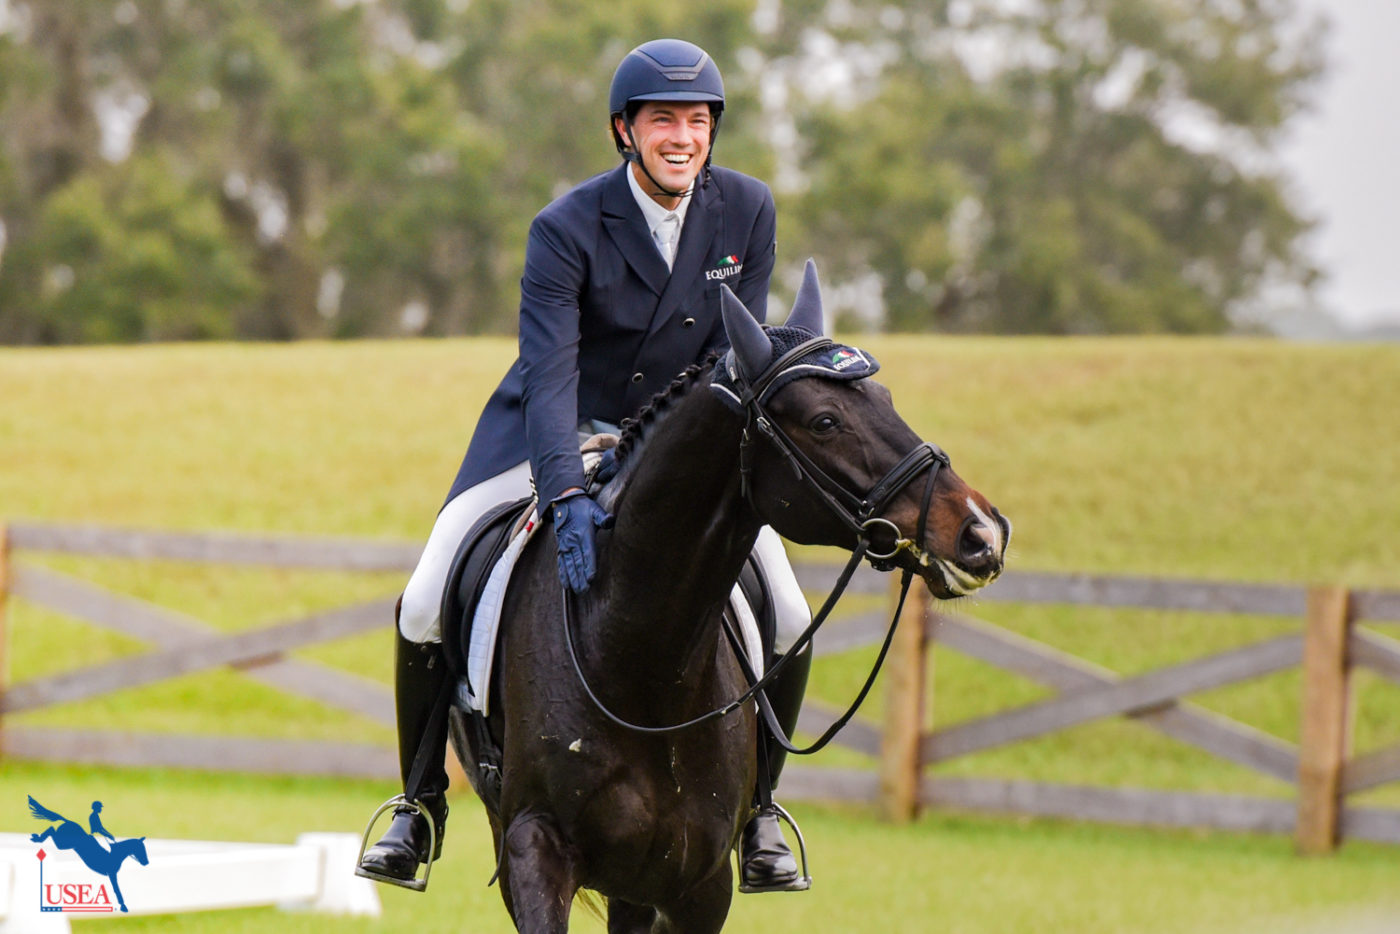 Will Coleman was all smiles after his dressage test.